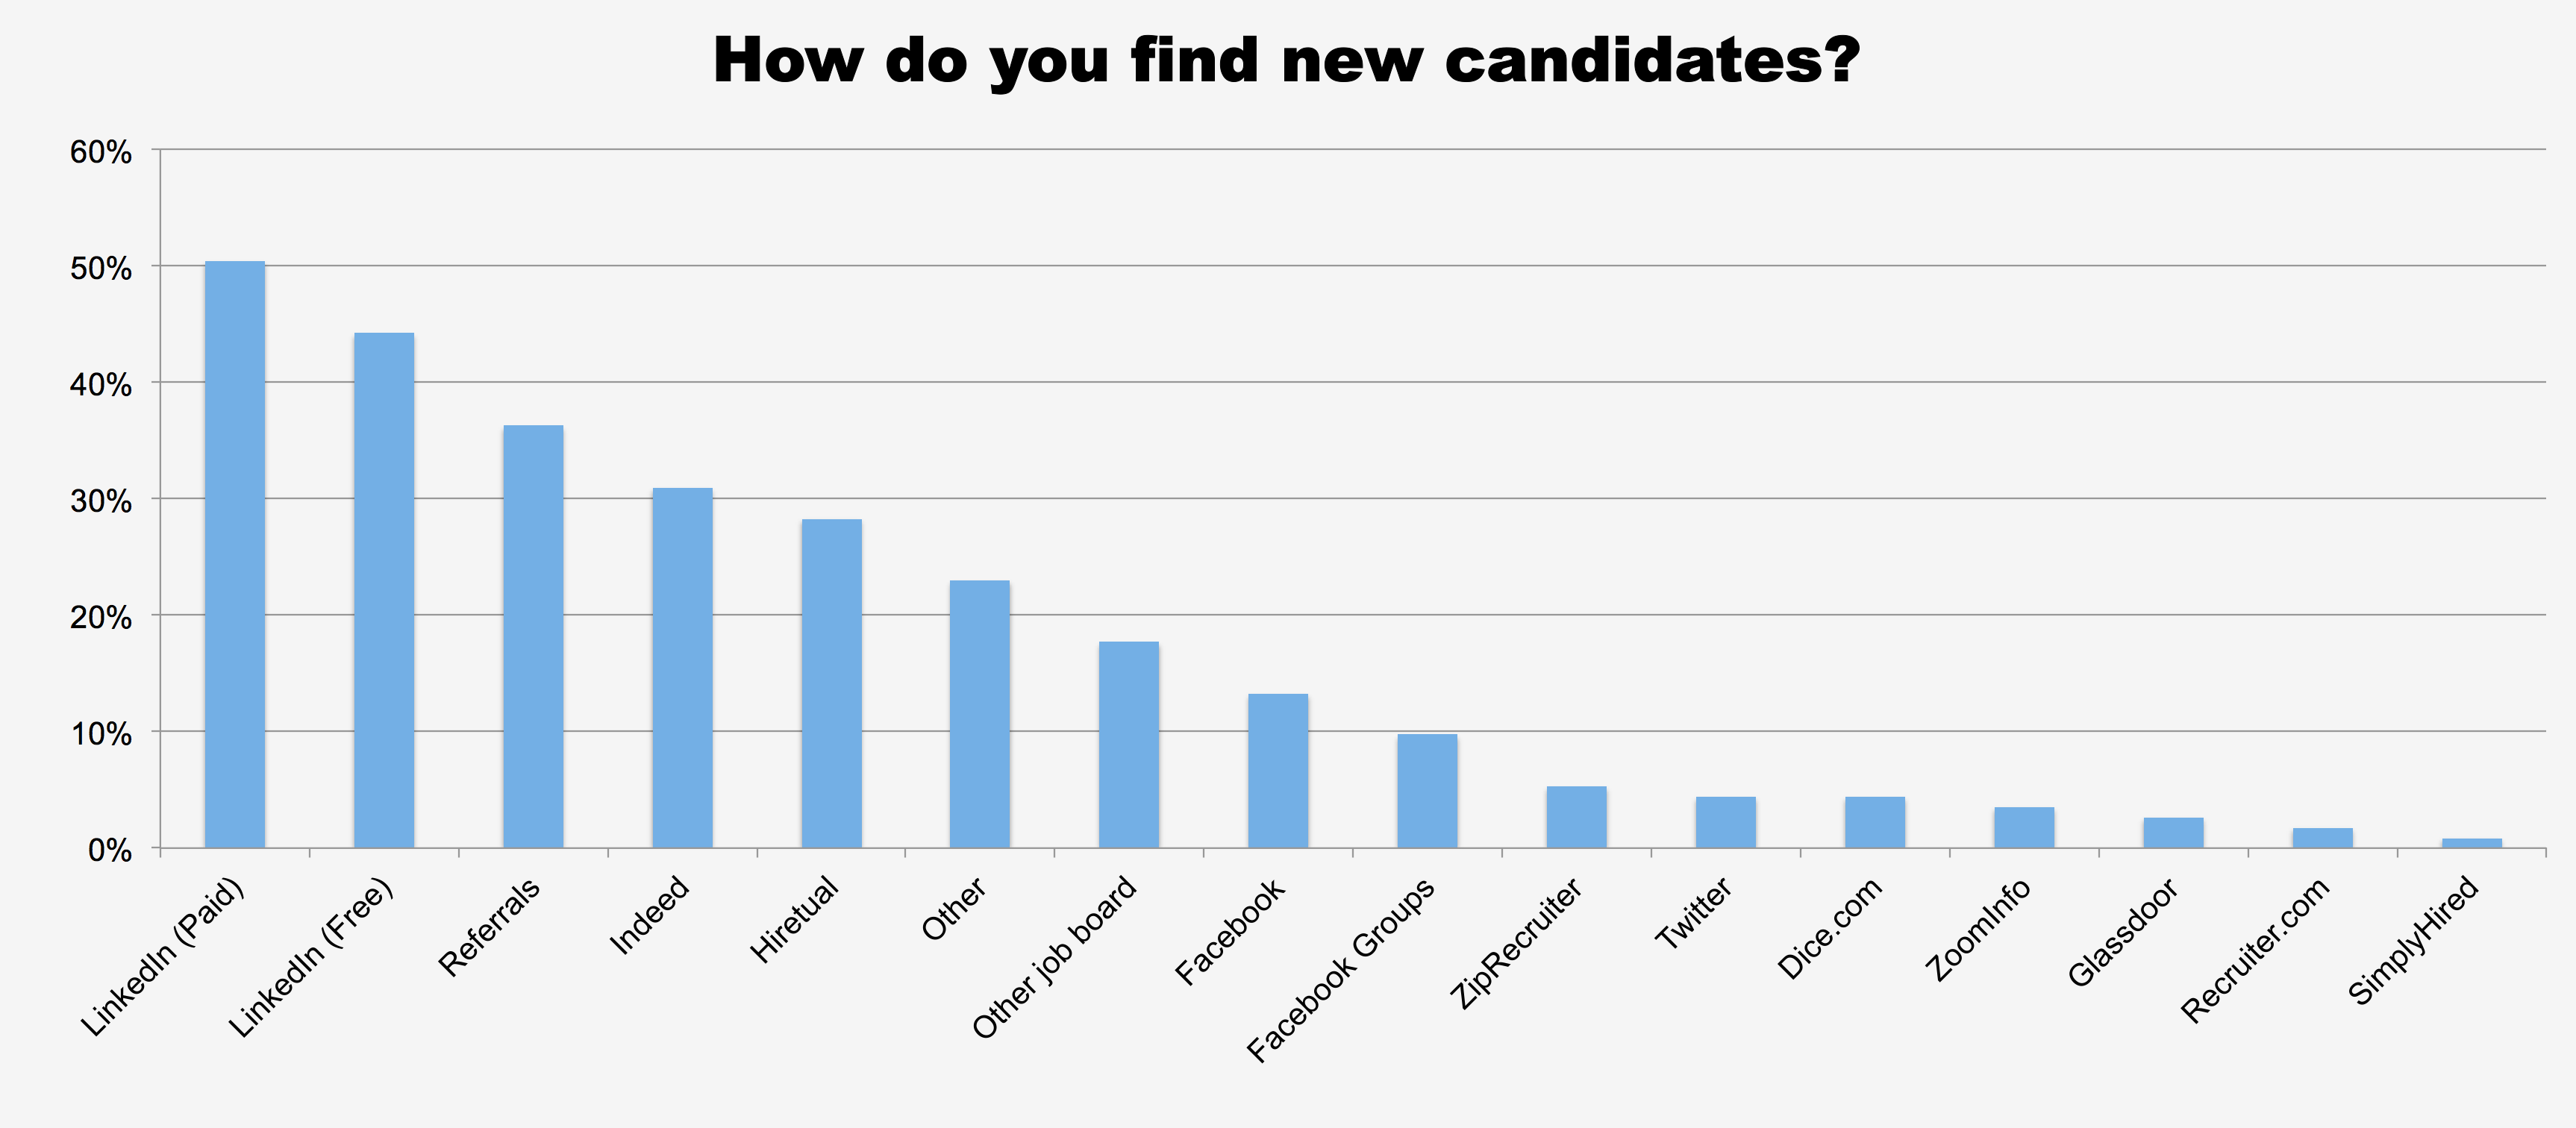 How do you find new candidates?